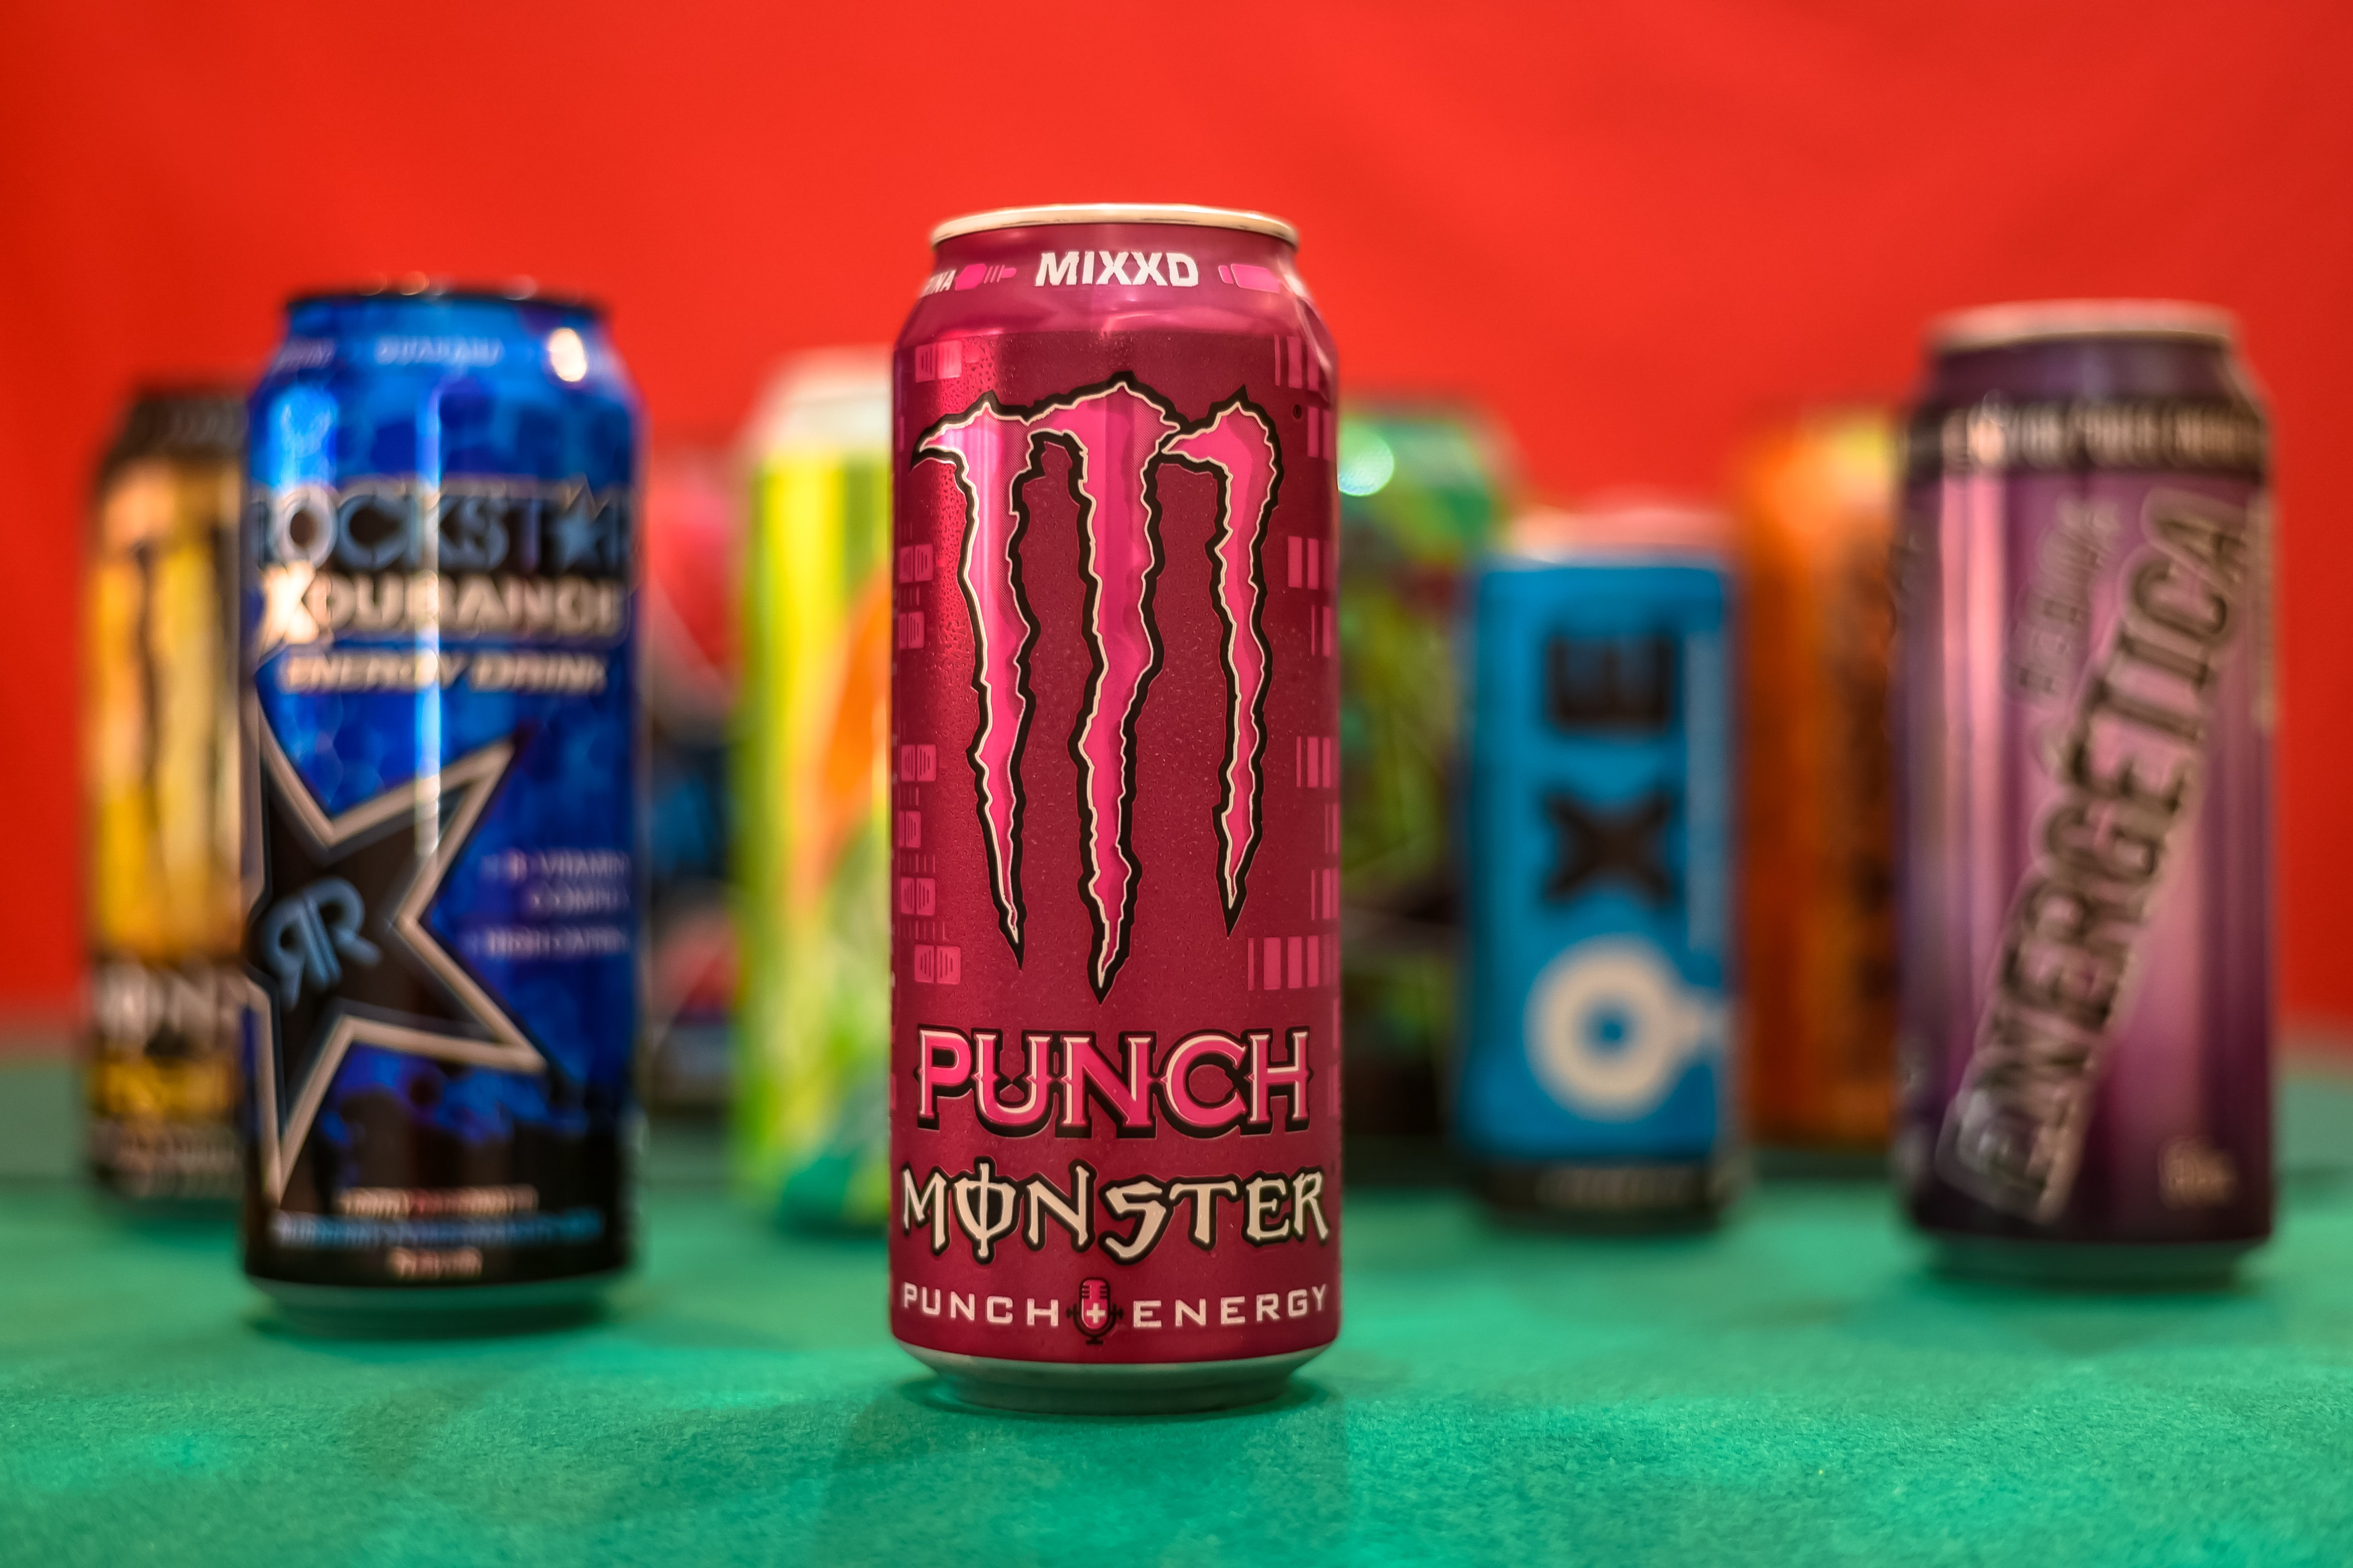 How Can Your Brand Benefit From Energy Drinks and Social Media Engagement